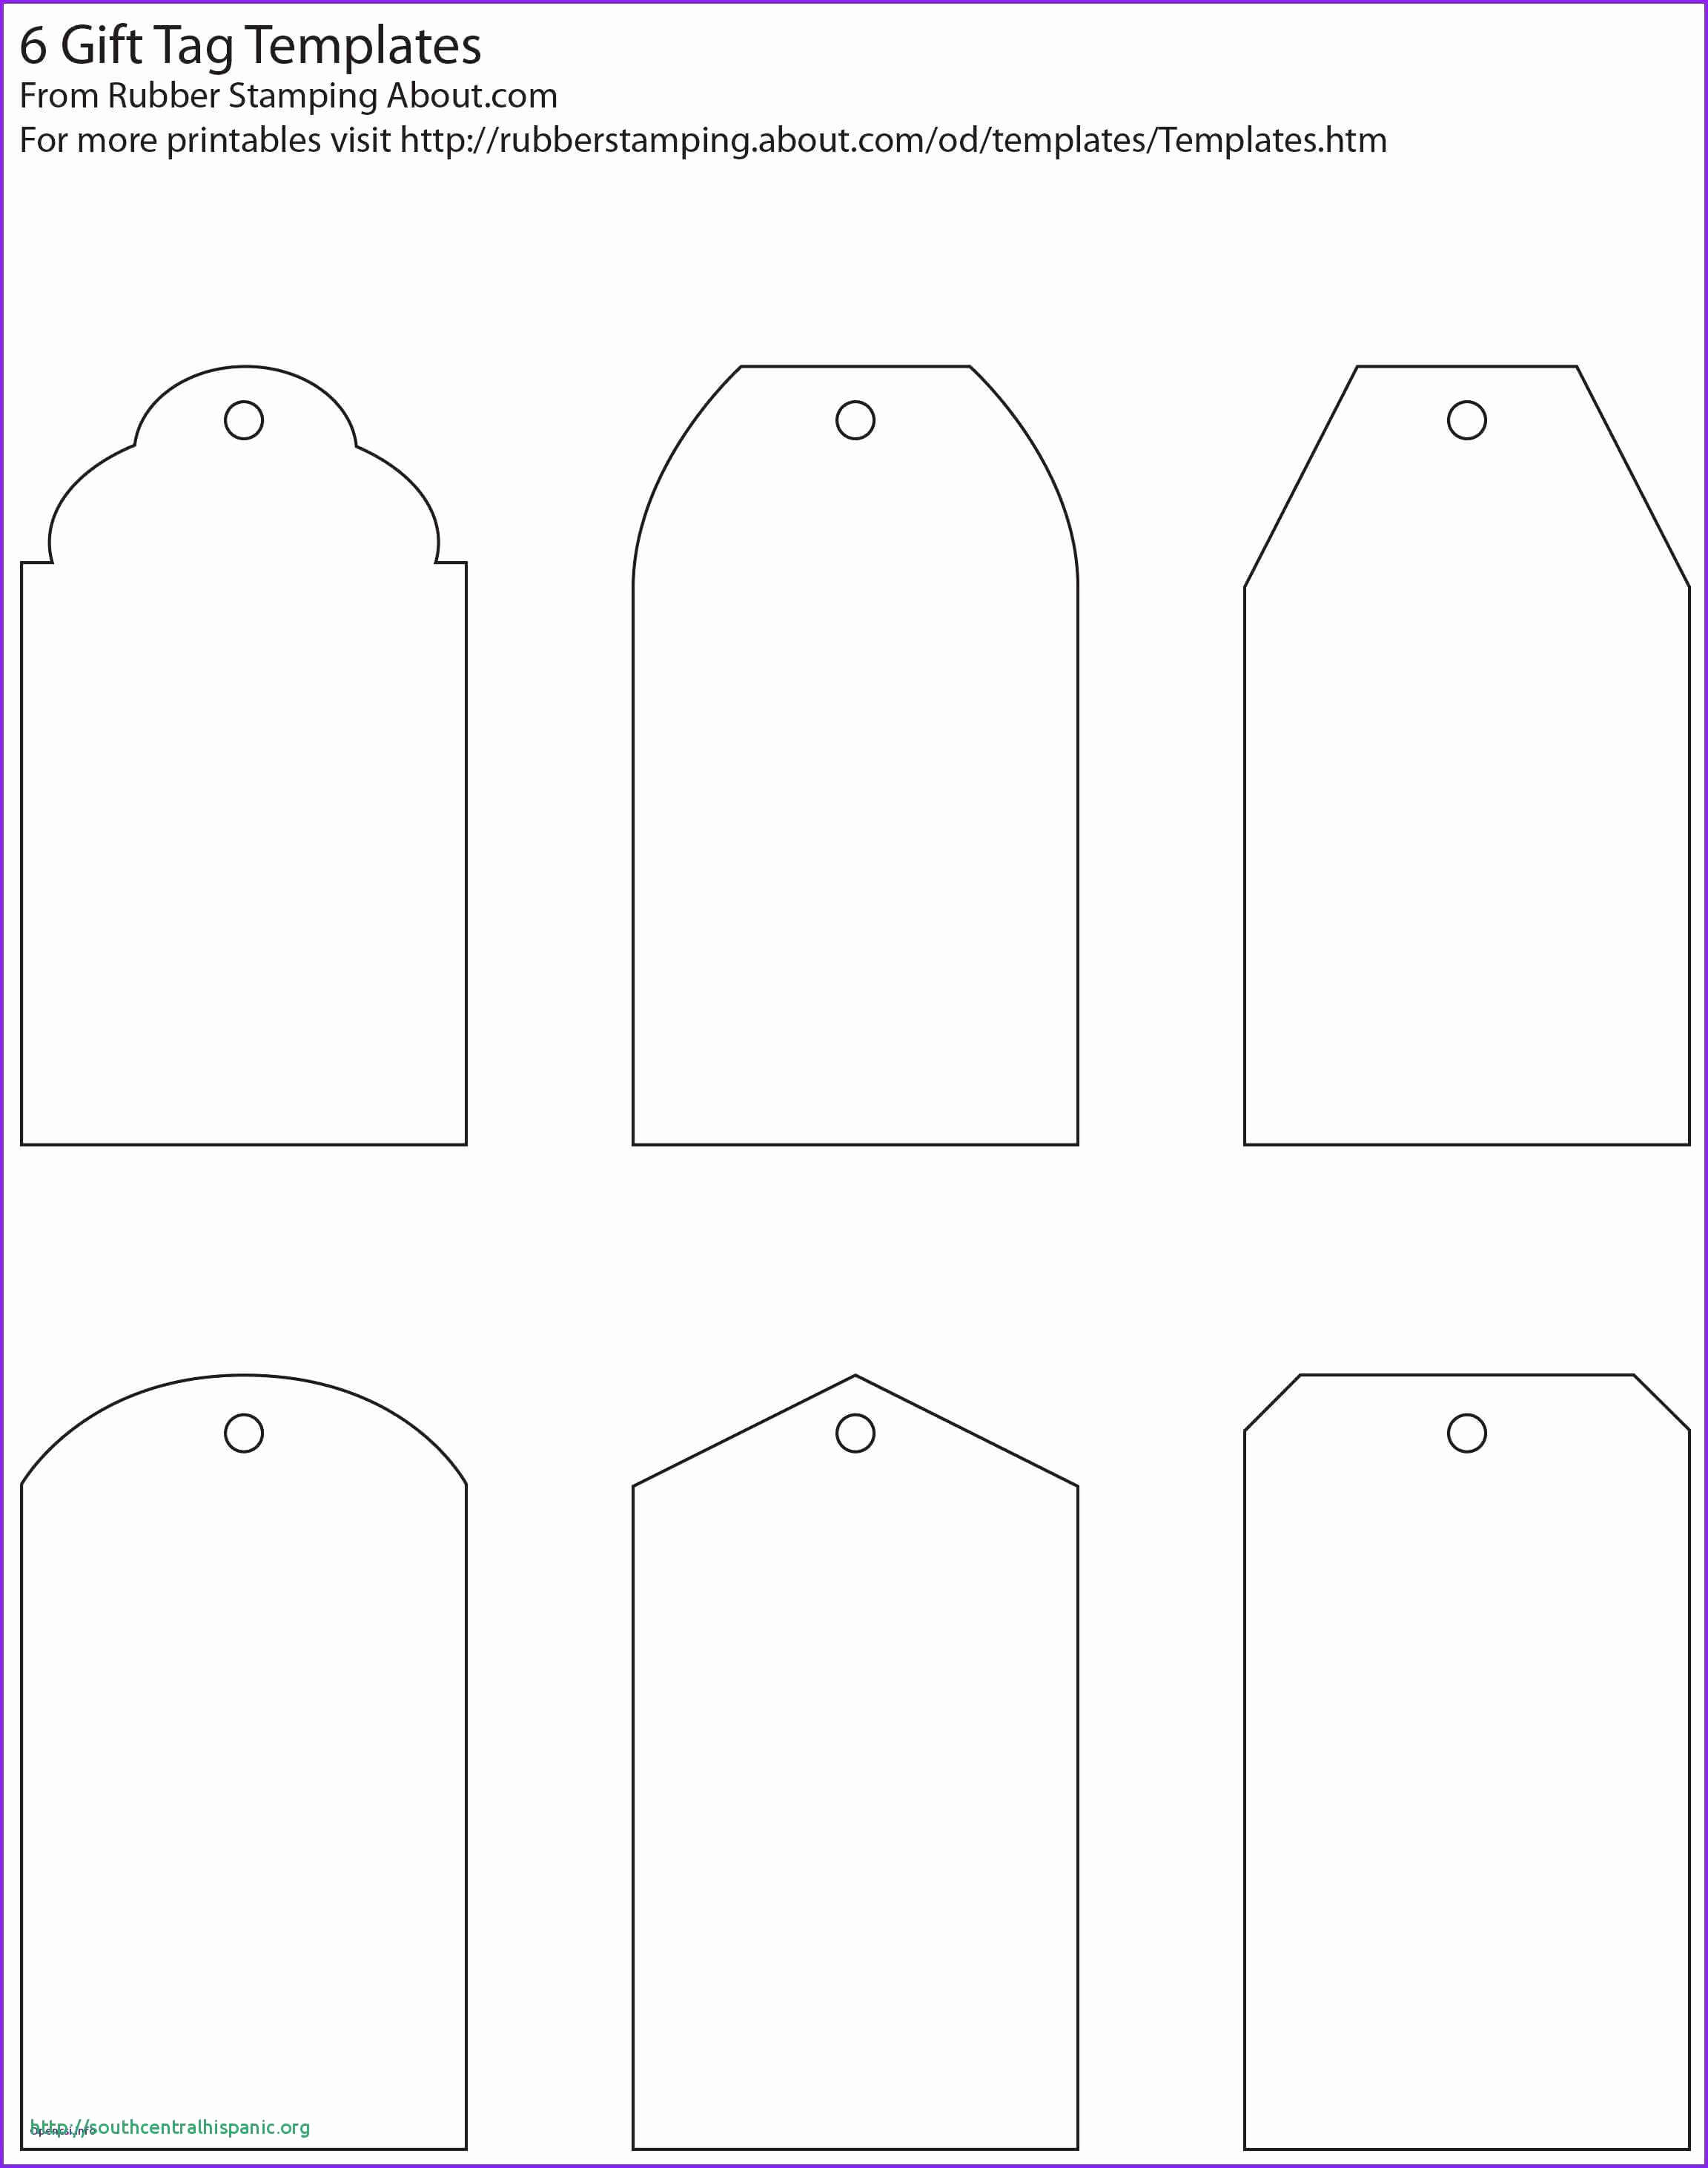 Free Place Card Template 6 Per Sheet Inspirational Template within Place Card Template 6 Per Sheet